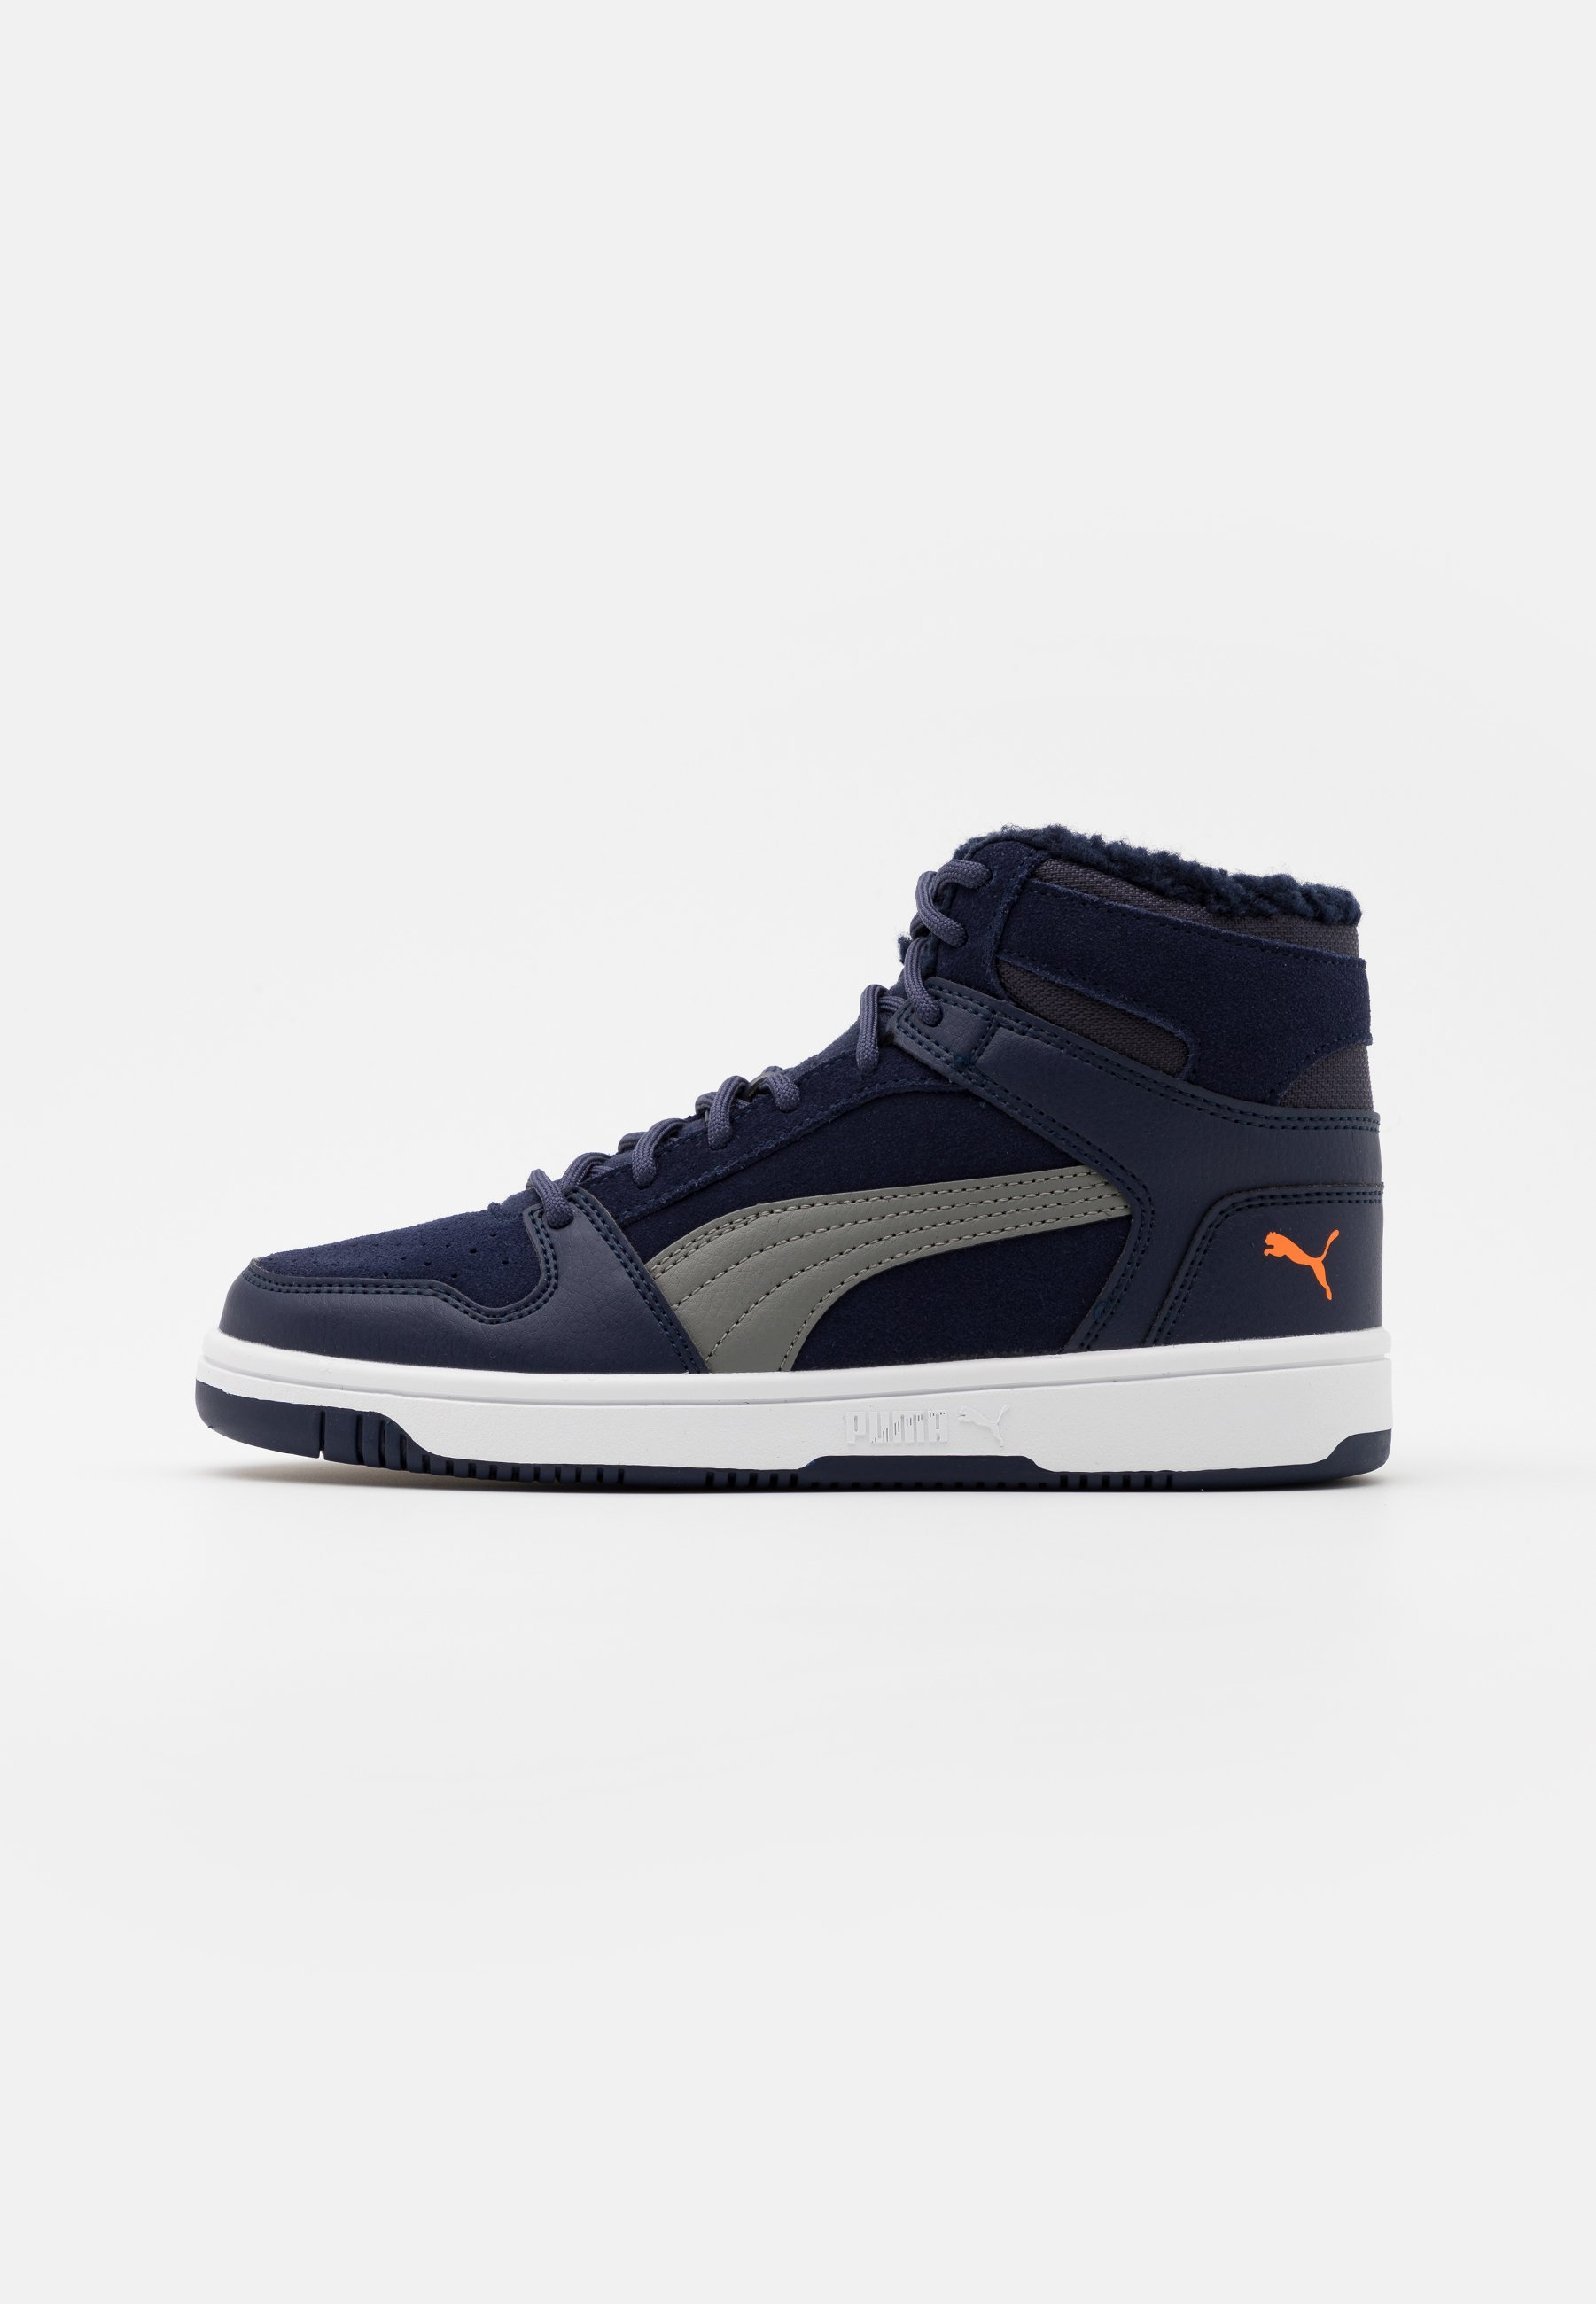 Buy shoes online | Upgrade your shoe collection | ZALANDO